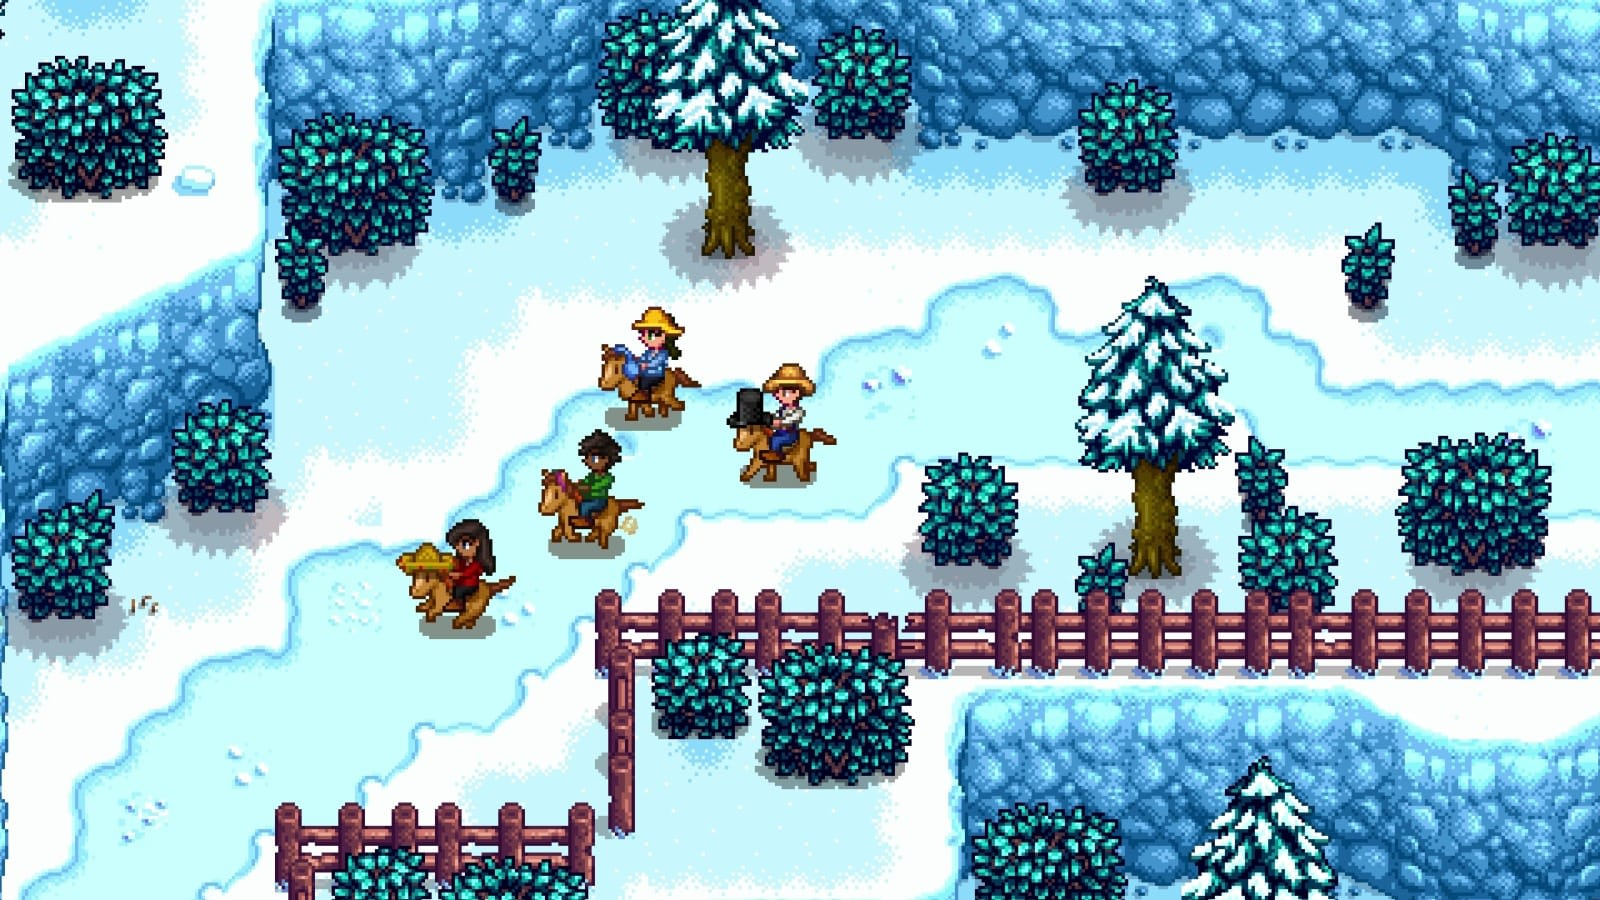 'Stardew Valley' Creator Is Working On More Content And A